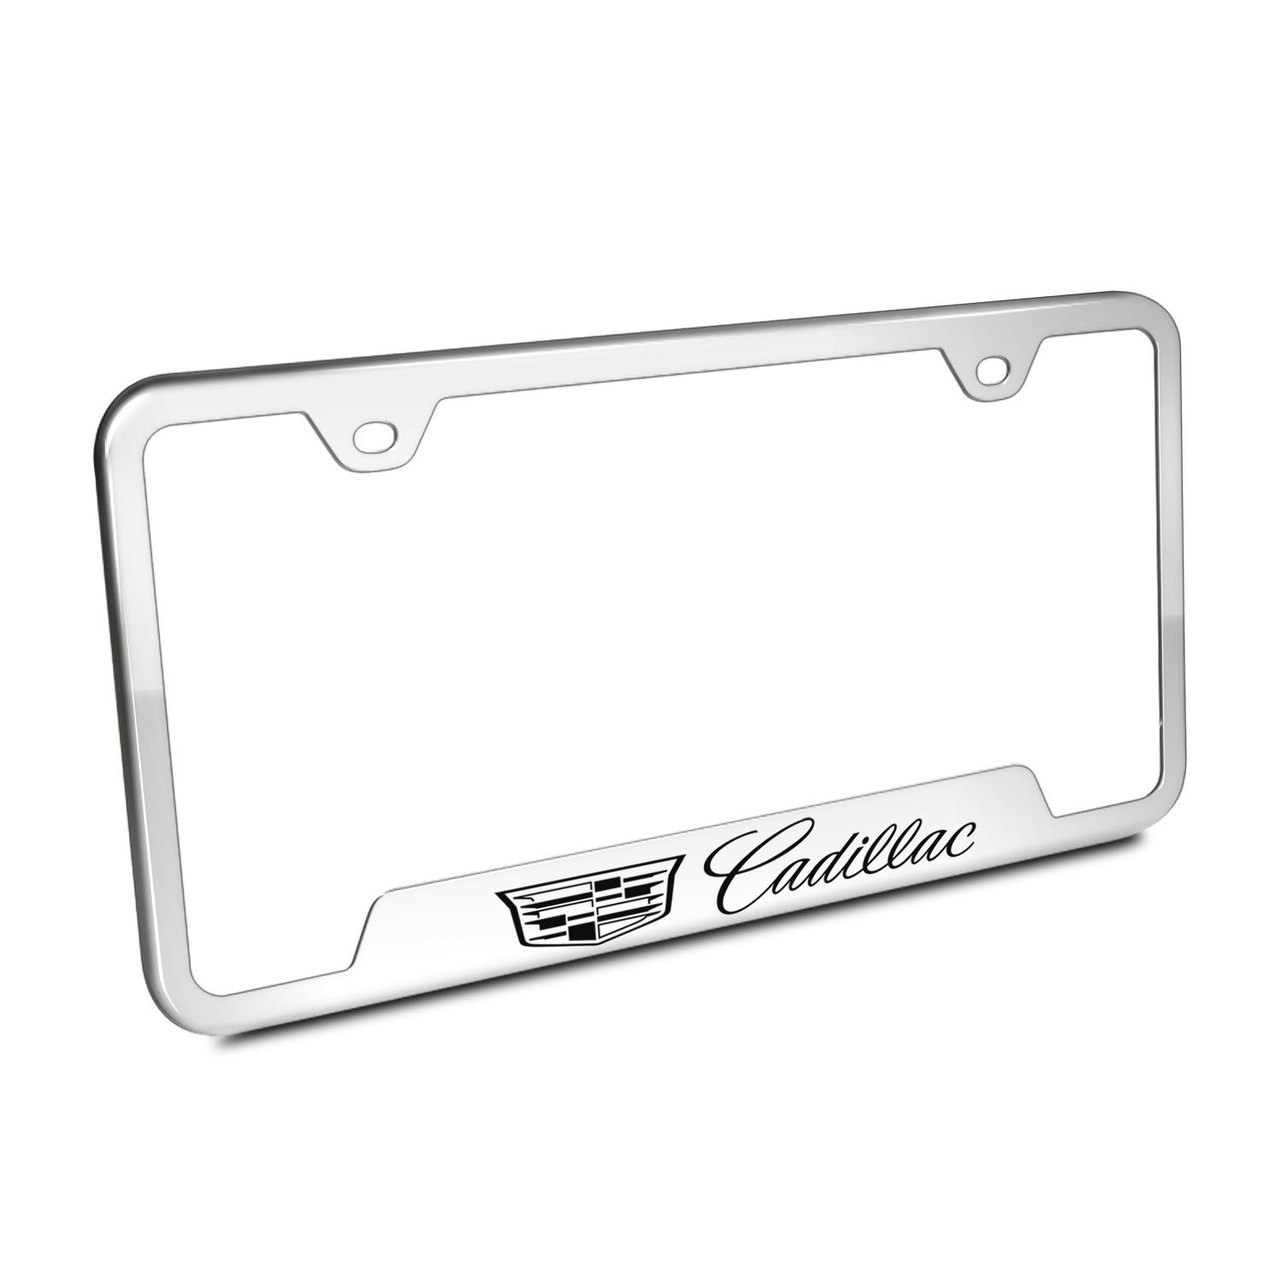 Cadillac Crest Logo Chrome Stainless Steel 50 States License Plate ...